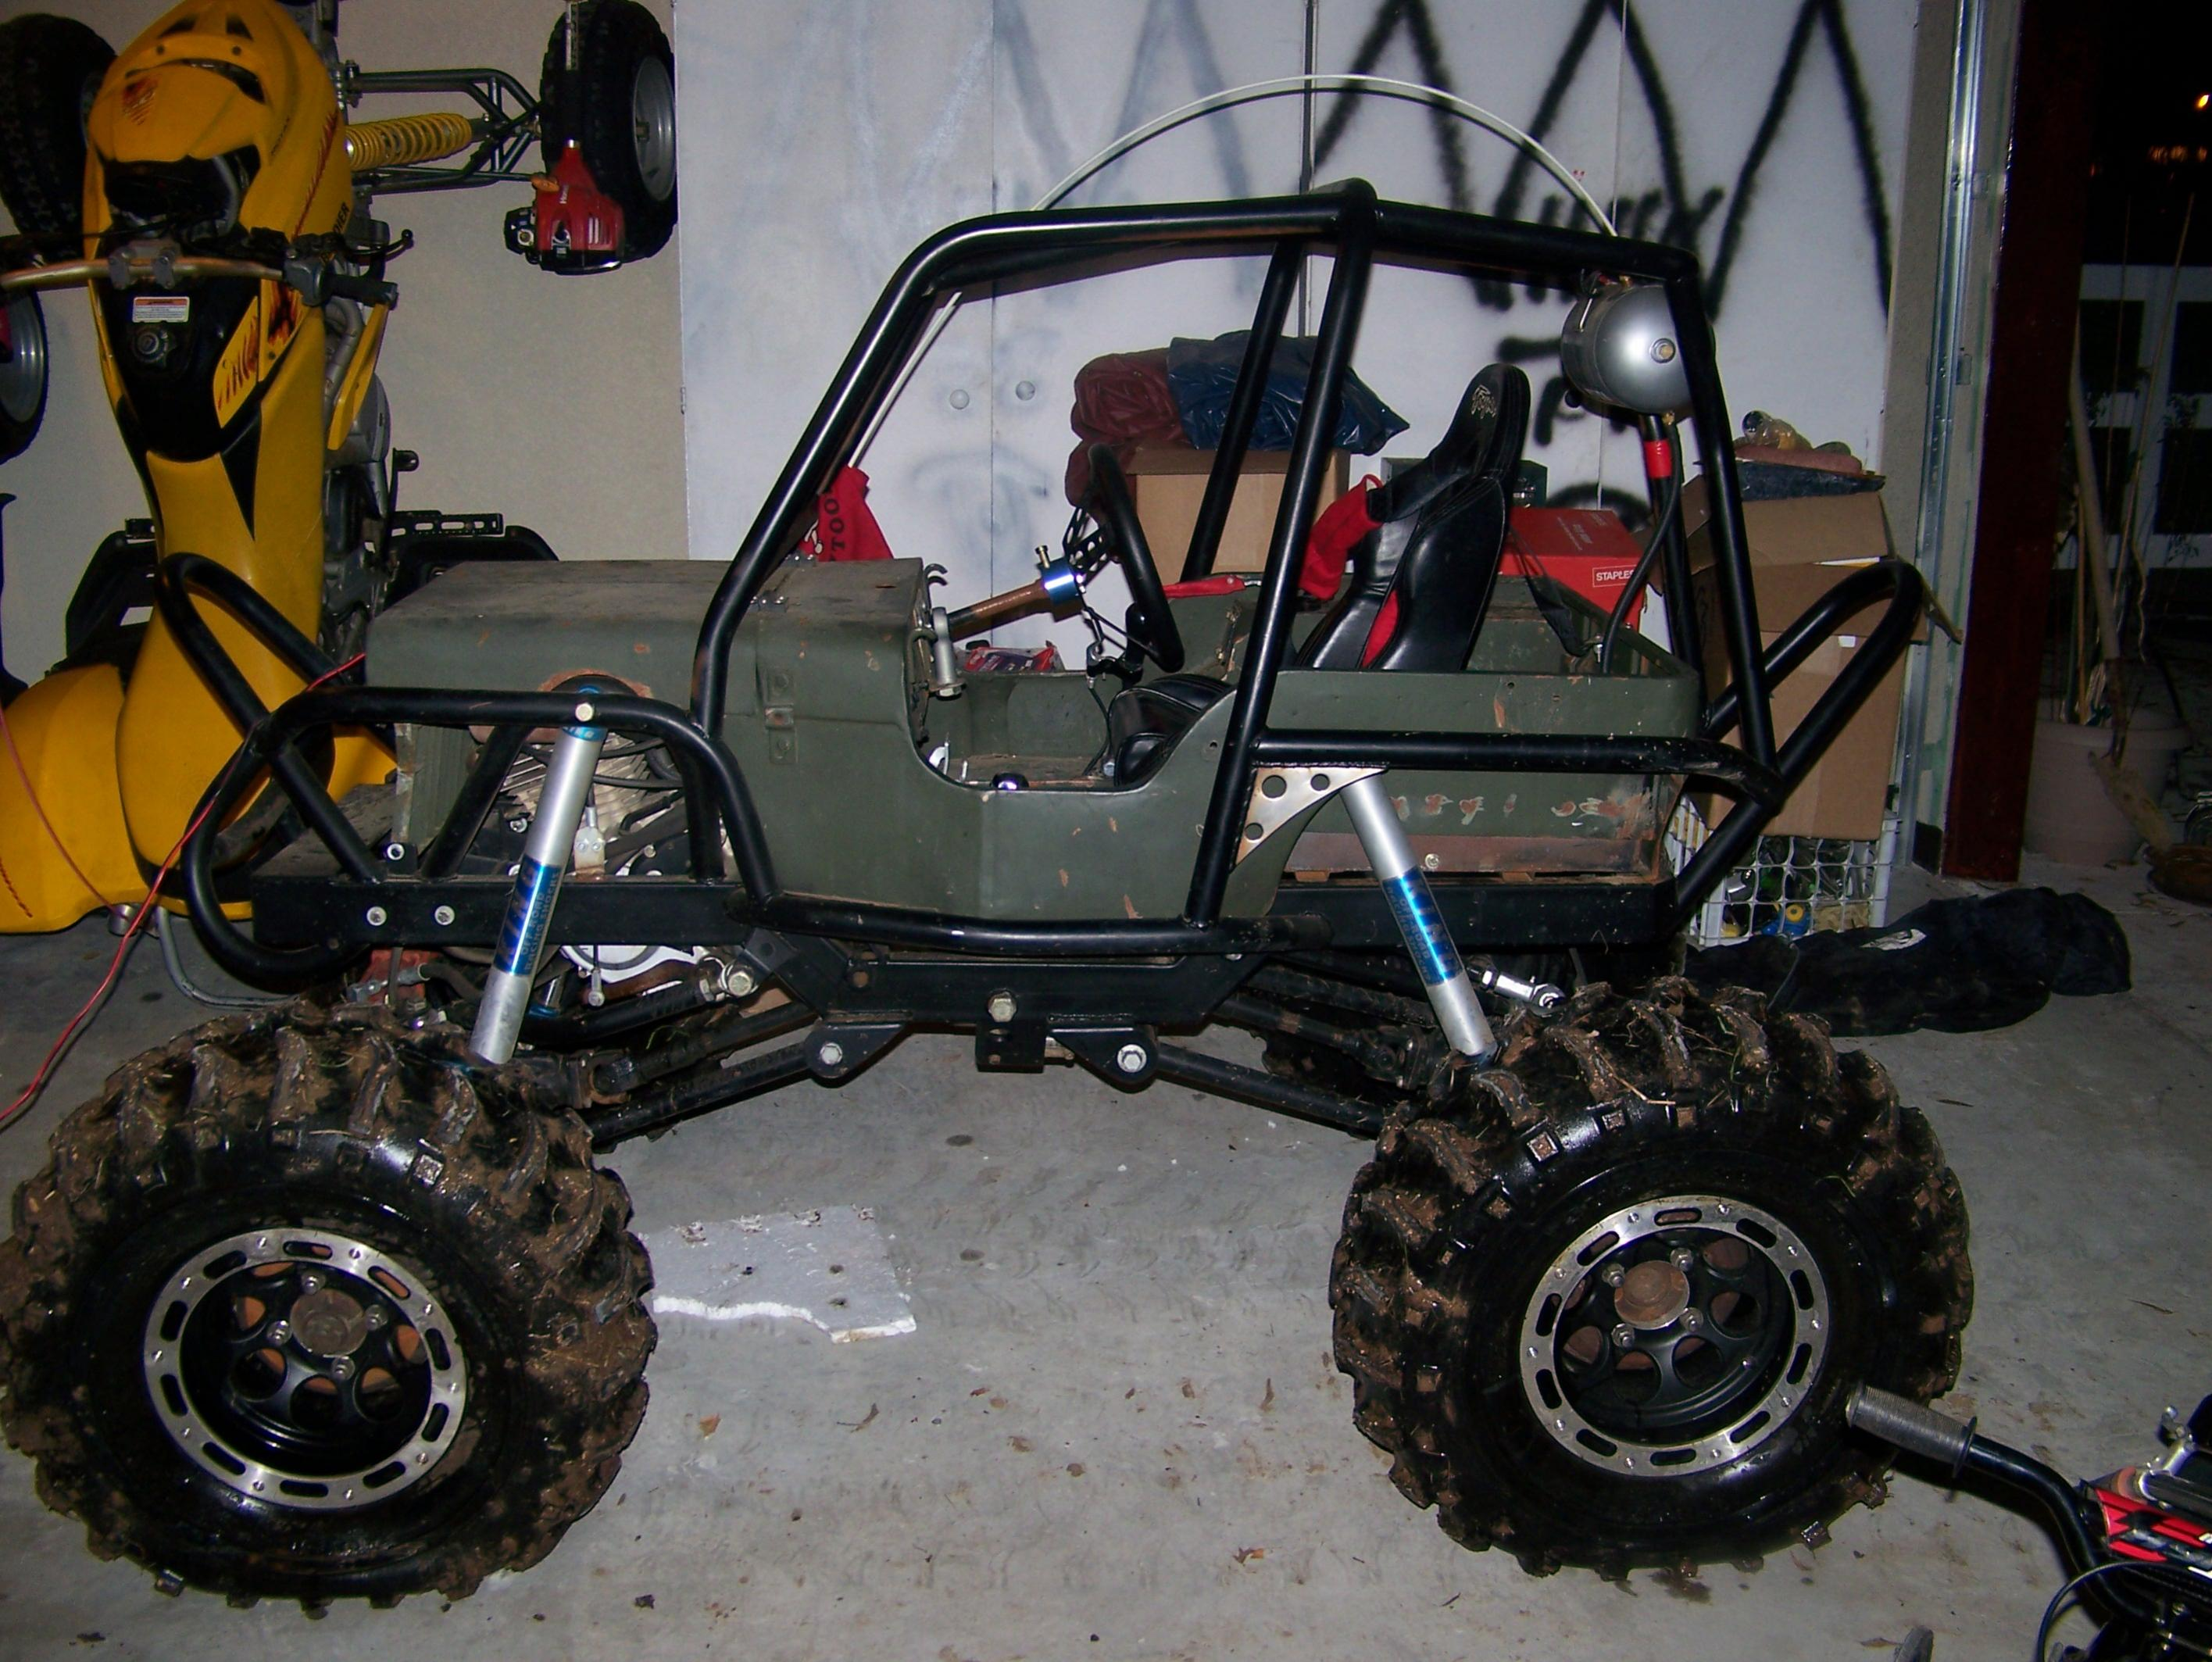 Mini rock crawler for kids - Page 3 - Pirate4x4.Com : 4x4 and Off ...